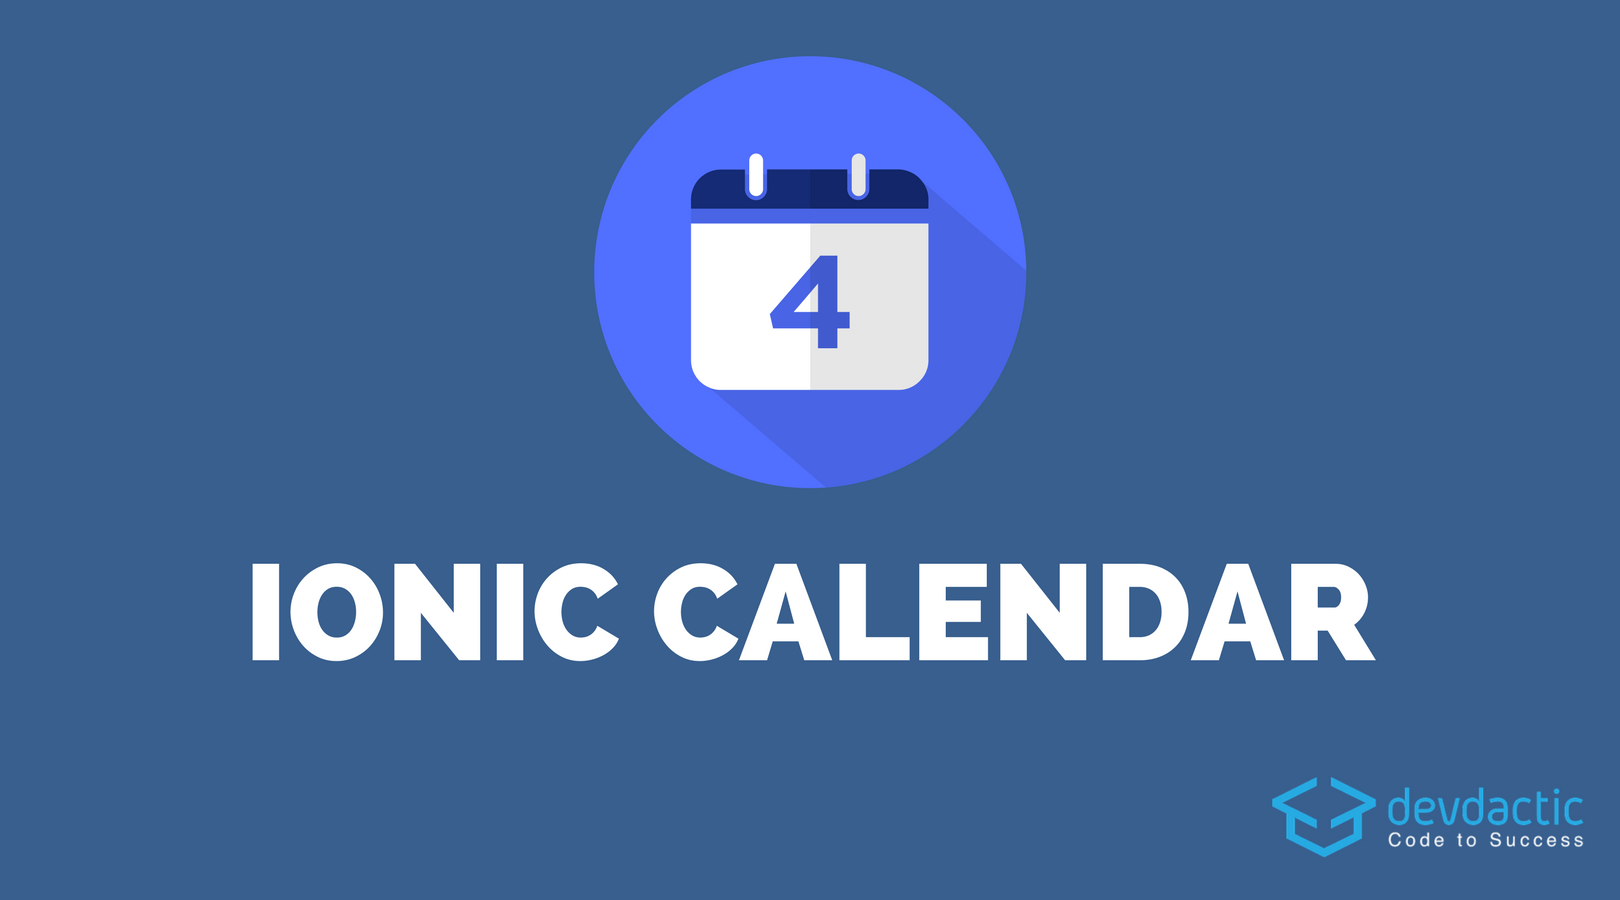 How to Build an Ionic Calendar App - Devdactic